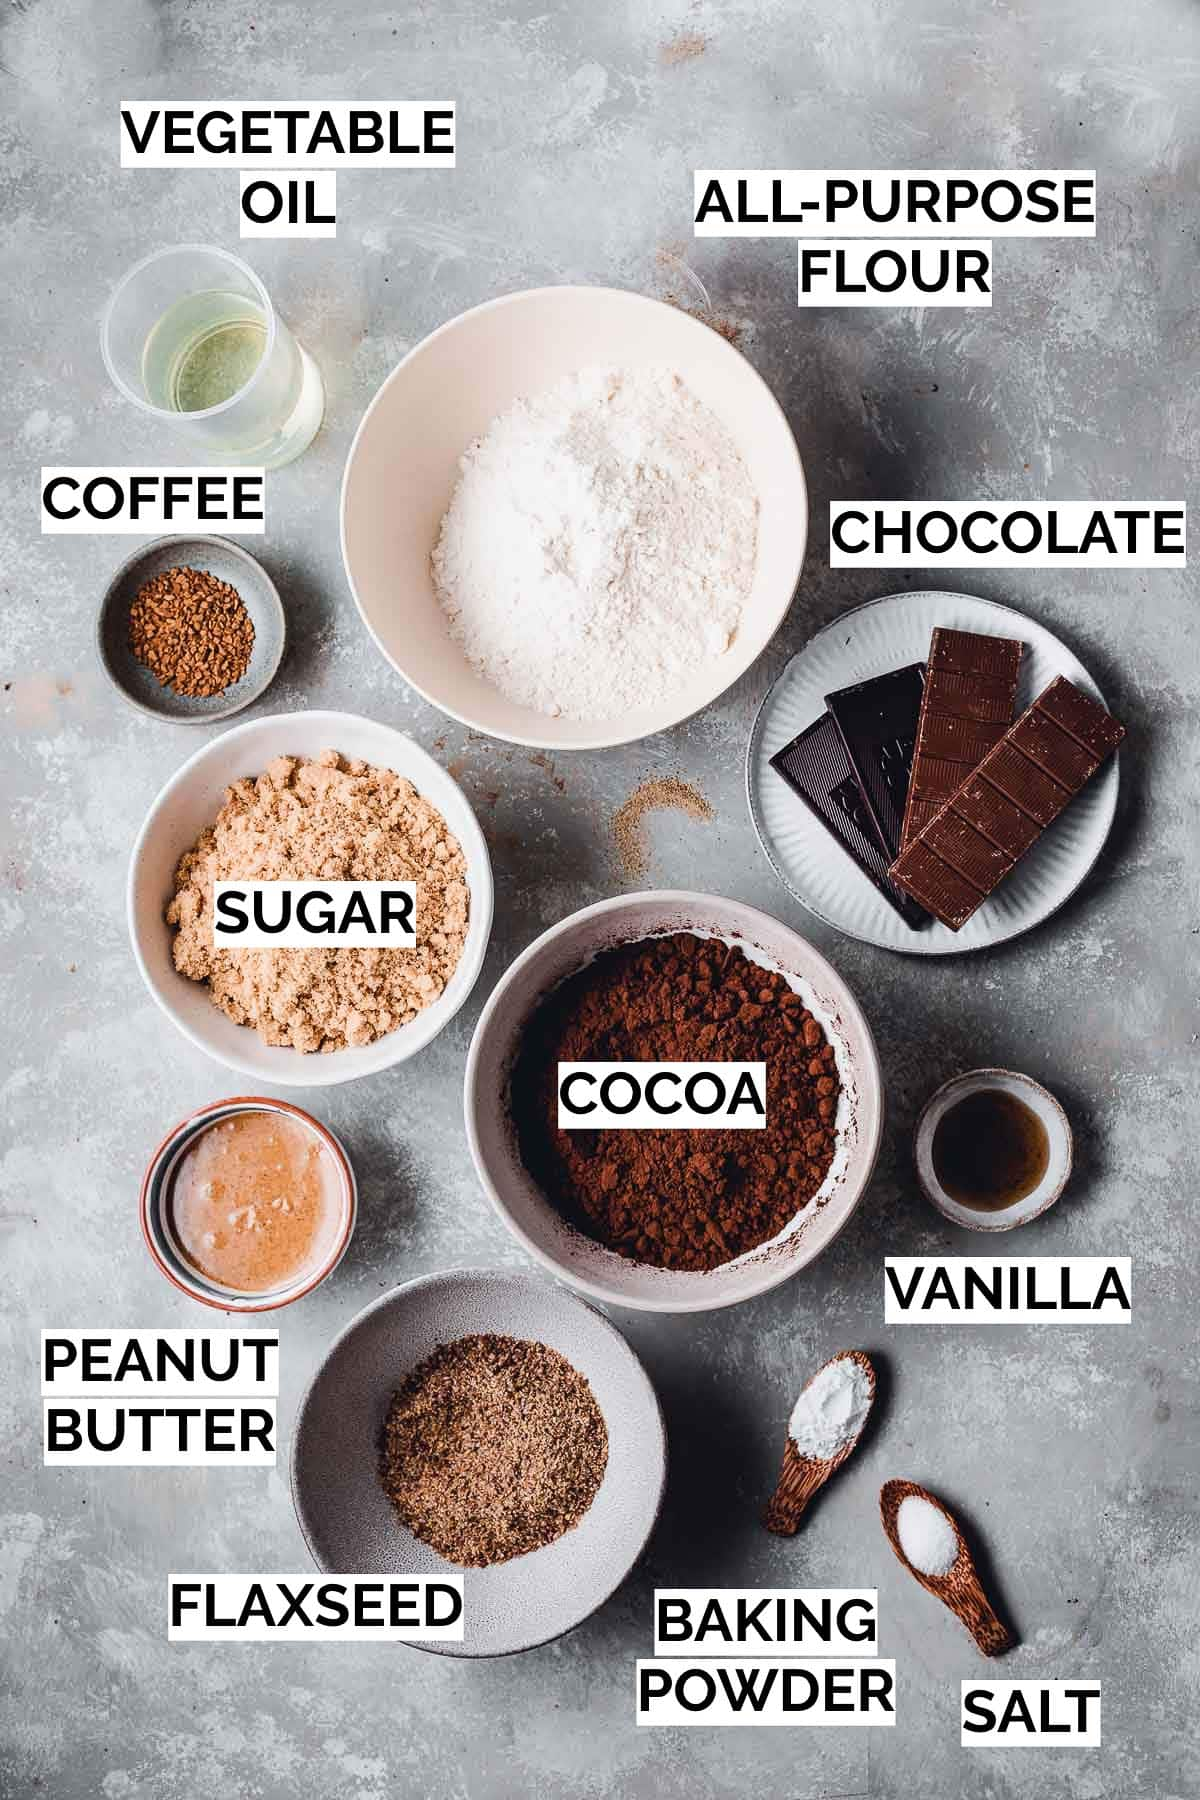 Various ingredients needed to make chocolate brownie shown on a flat surface.